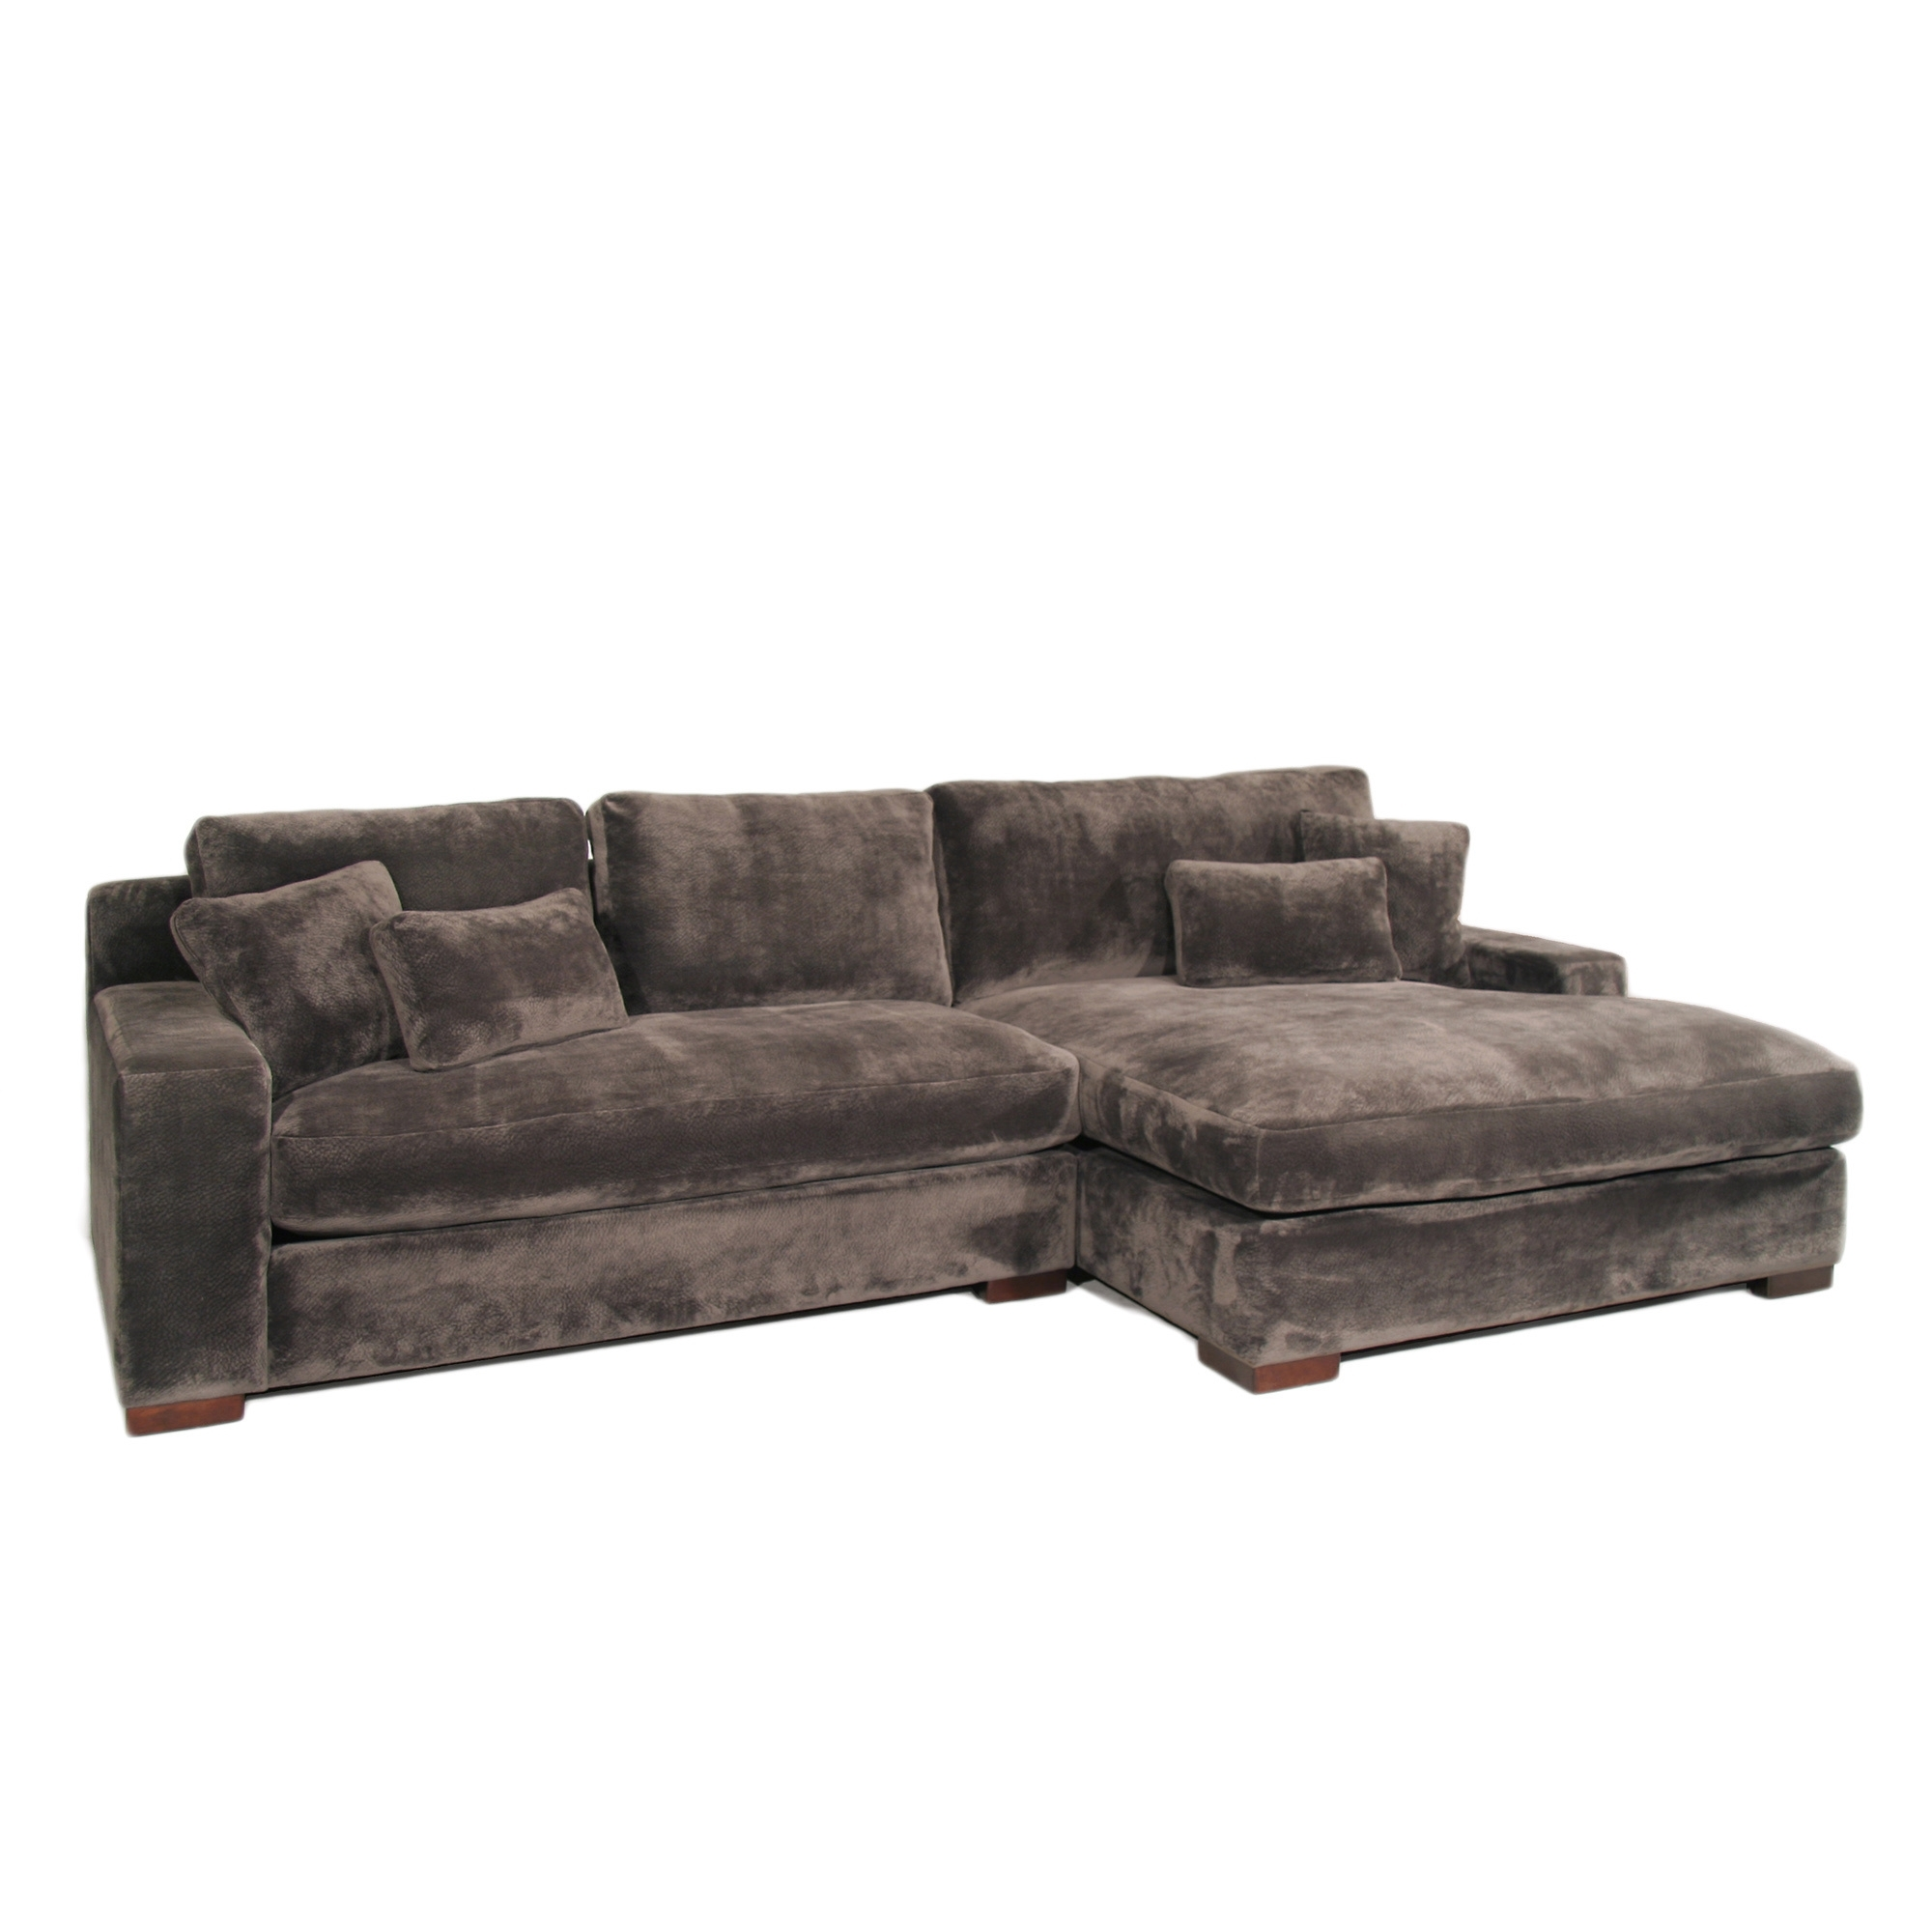 The Casual Contemporary Doris Two Piece Chaise Sectional Covered In Delano Smoke 3 Piece Sectionals (View 20 of 25)